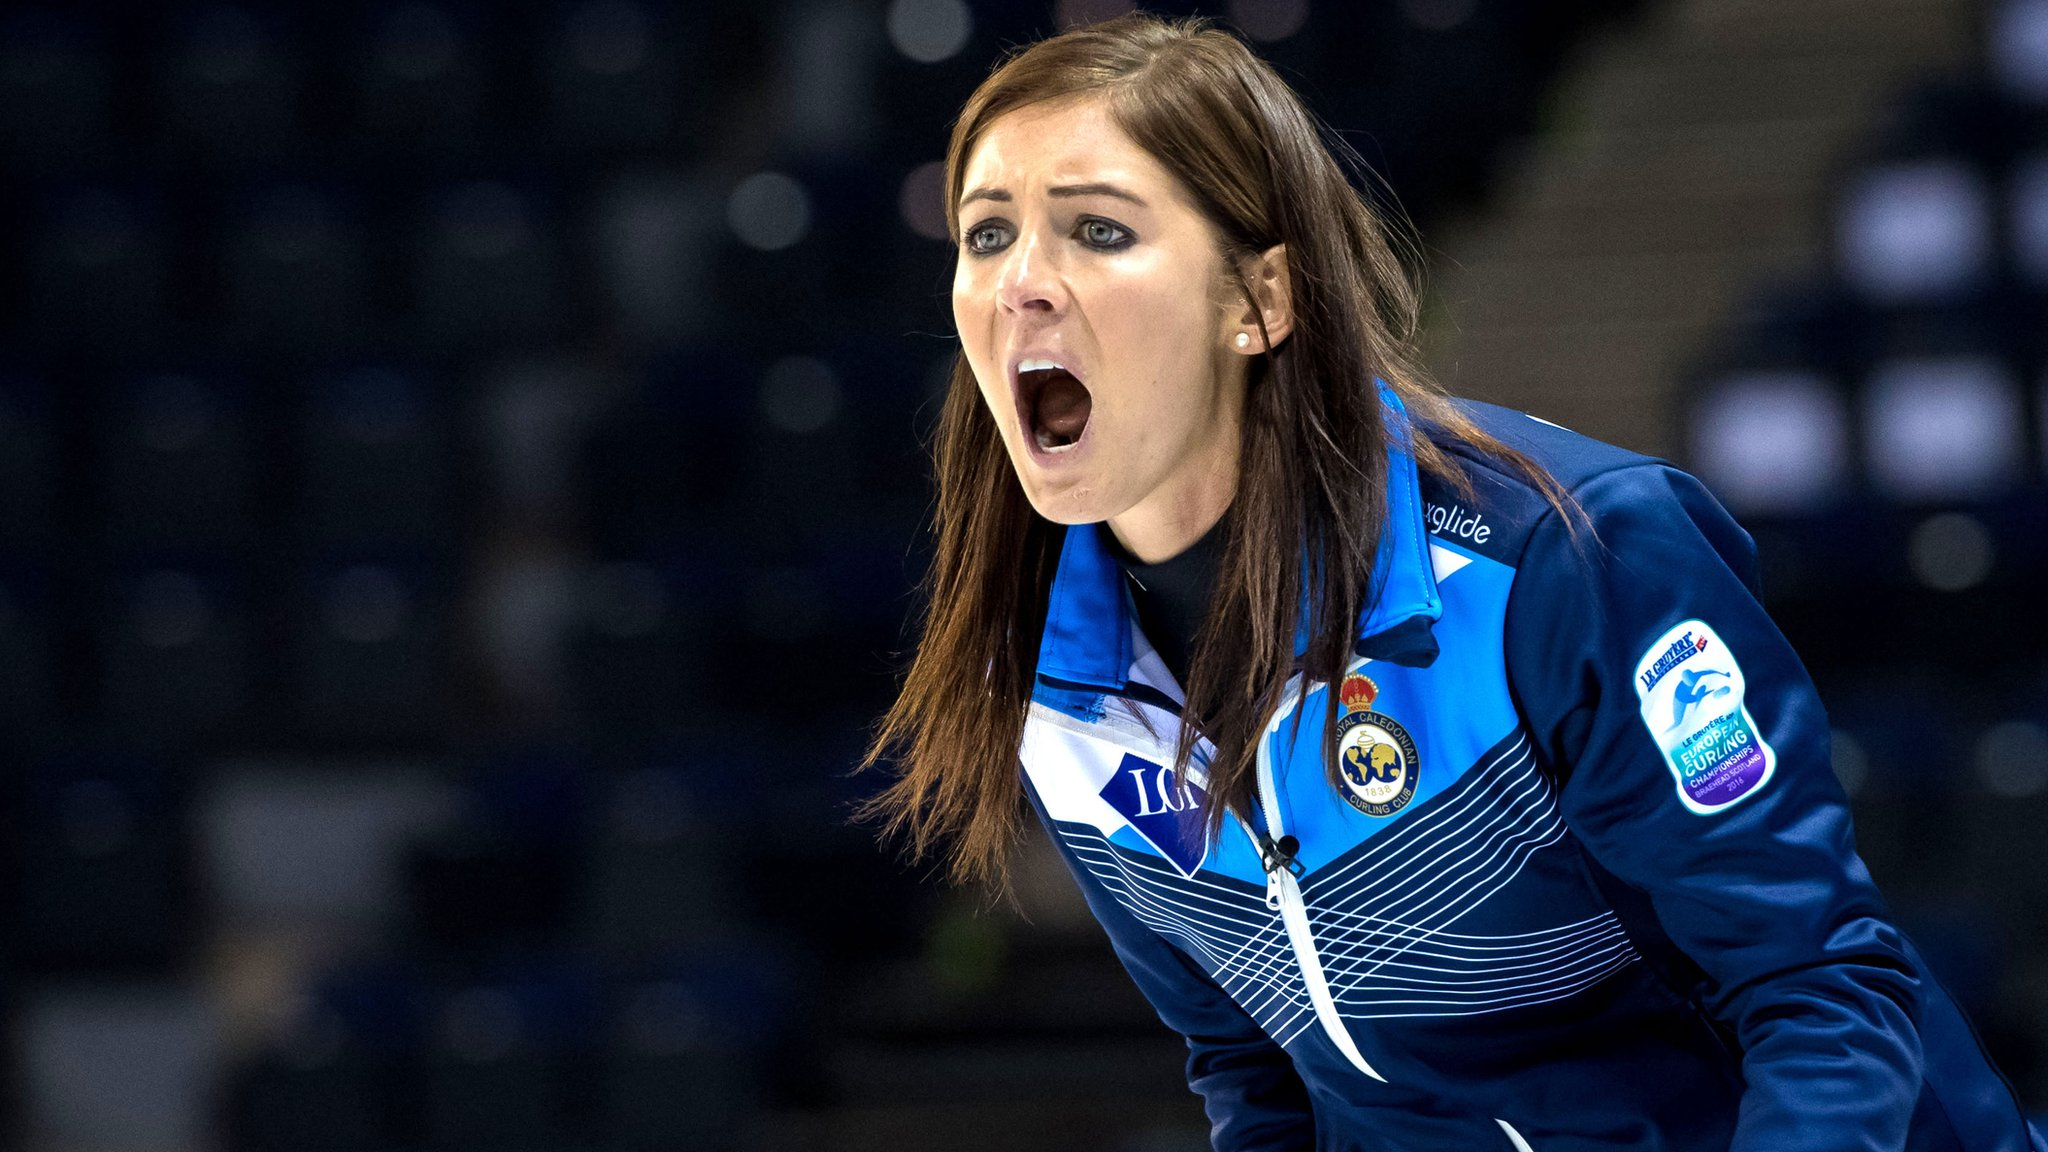 Eve Muirhead: Every time I went on the ice I was going through a lot of pain